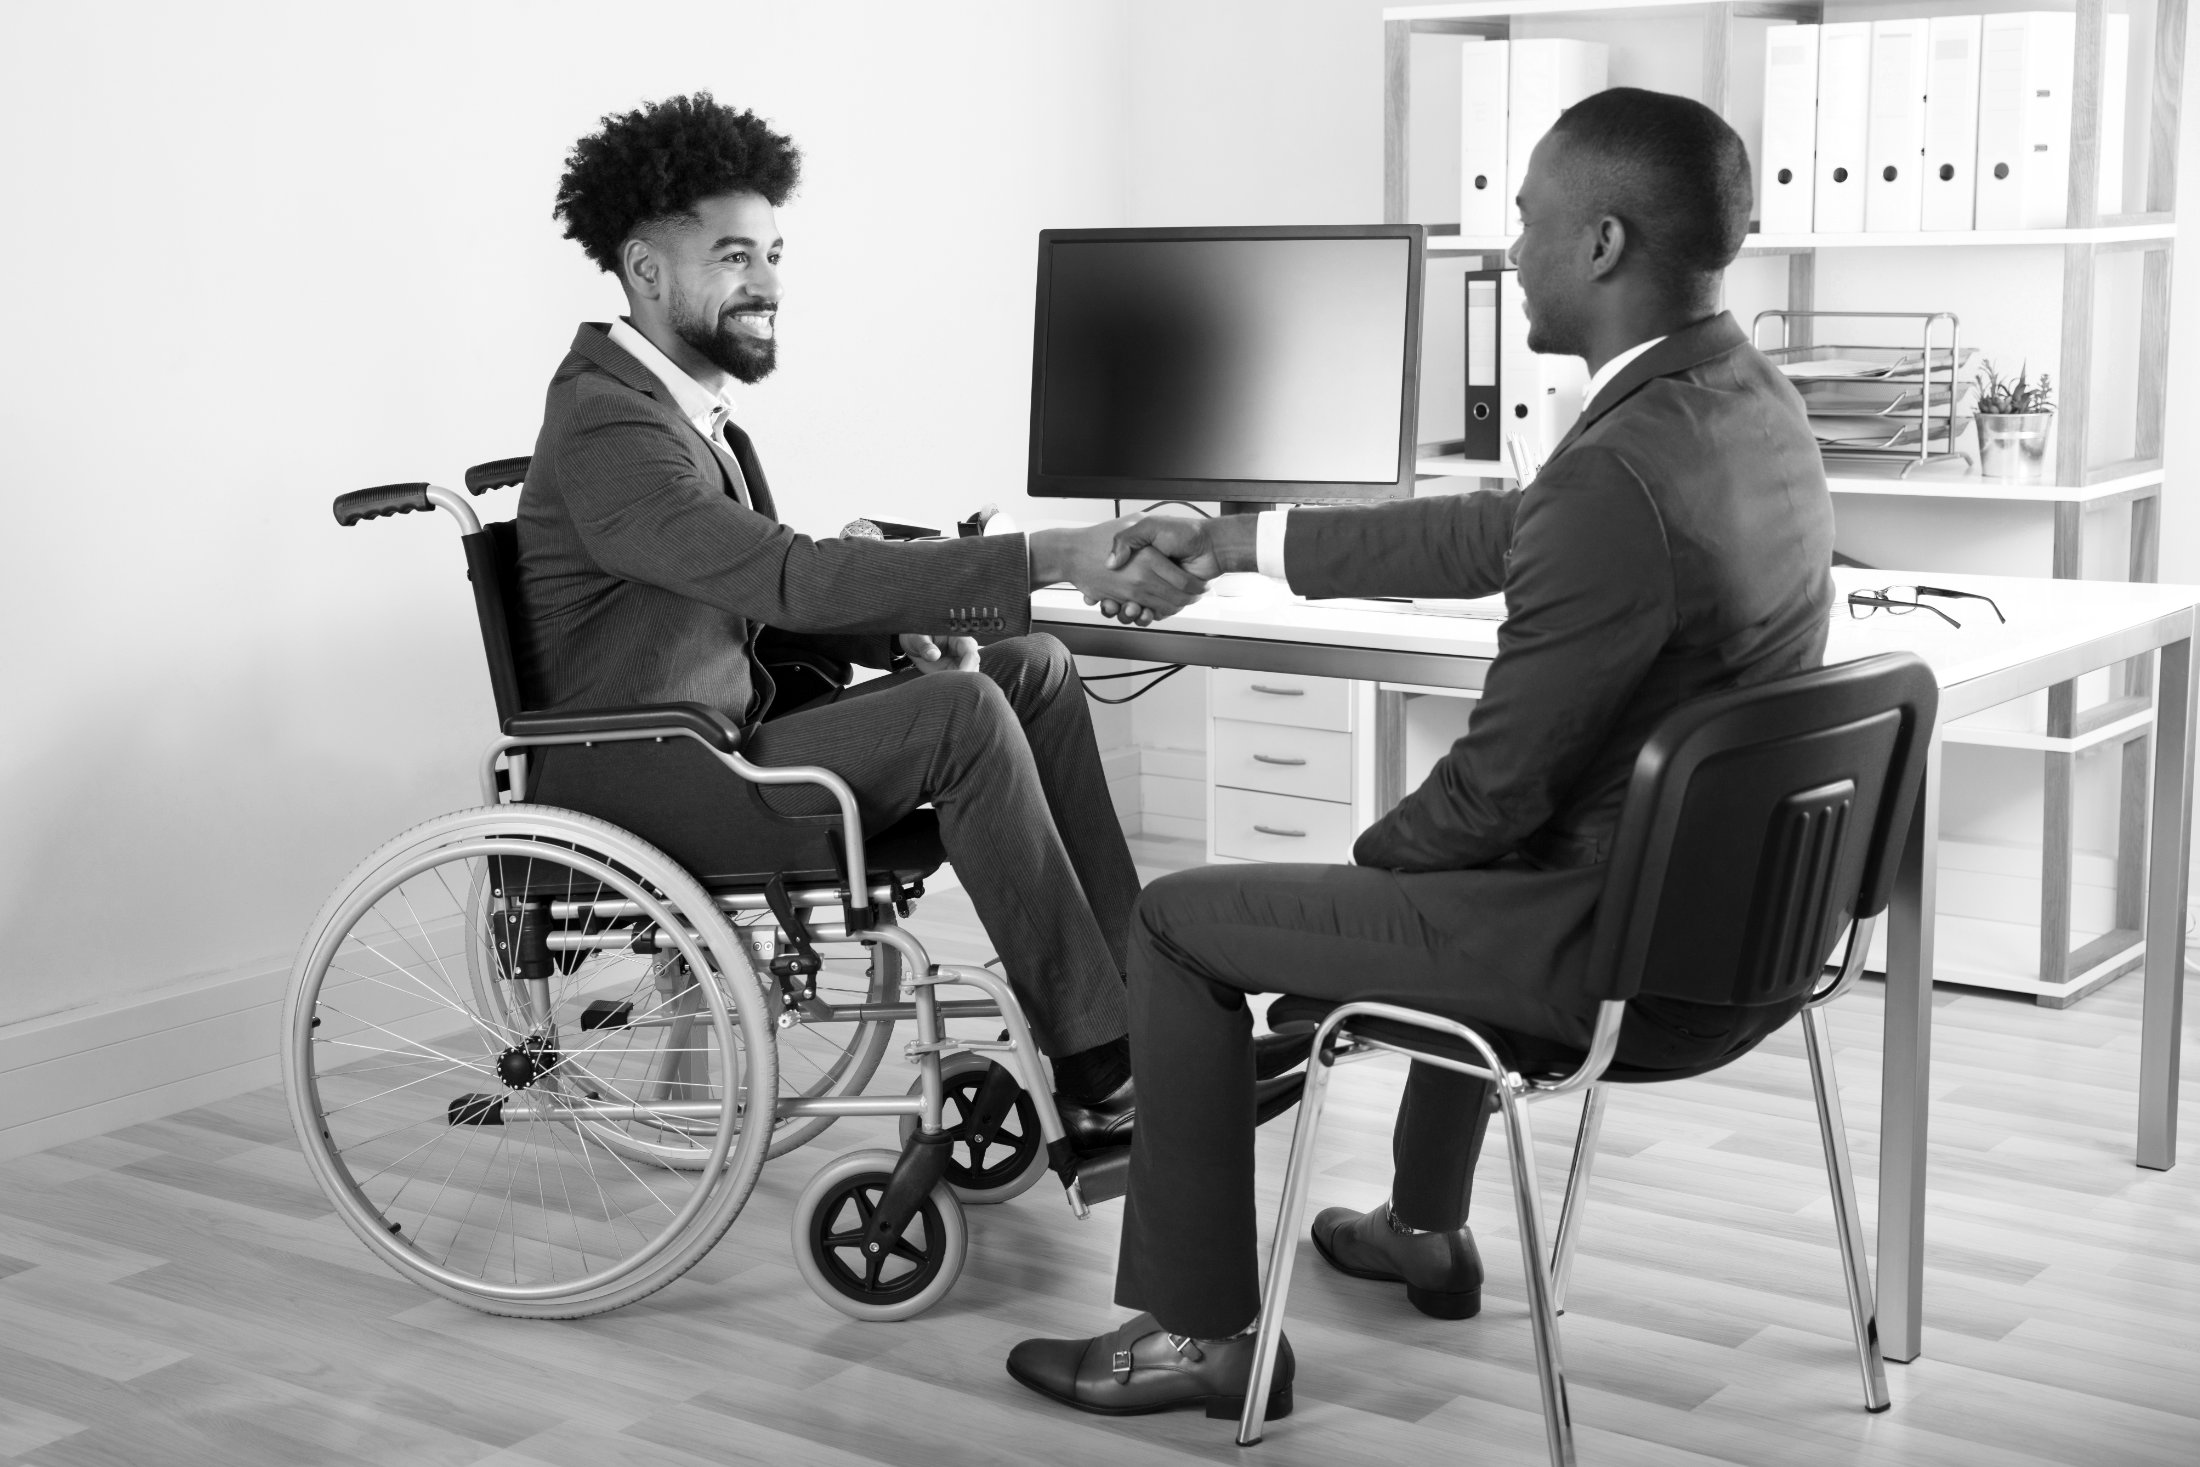 Why Employ Persons With Disabilities